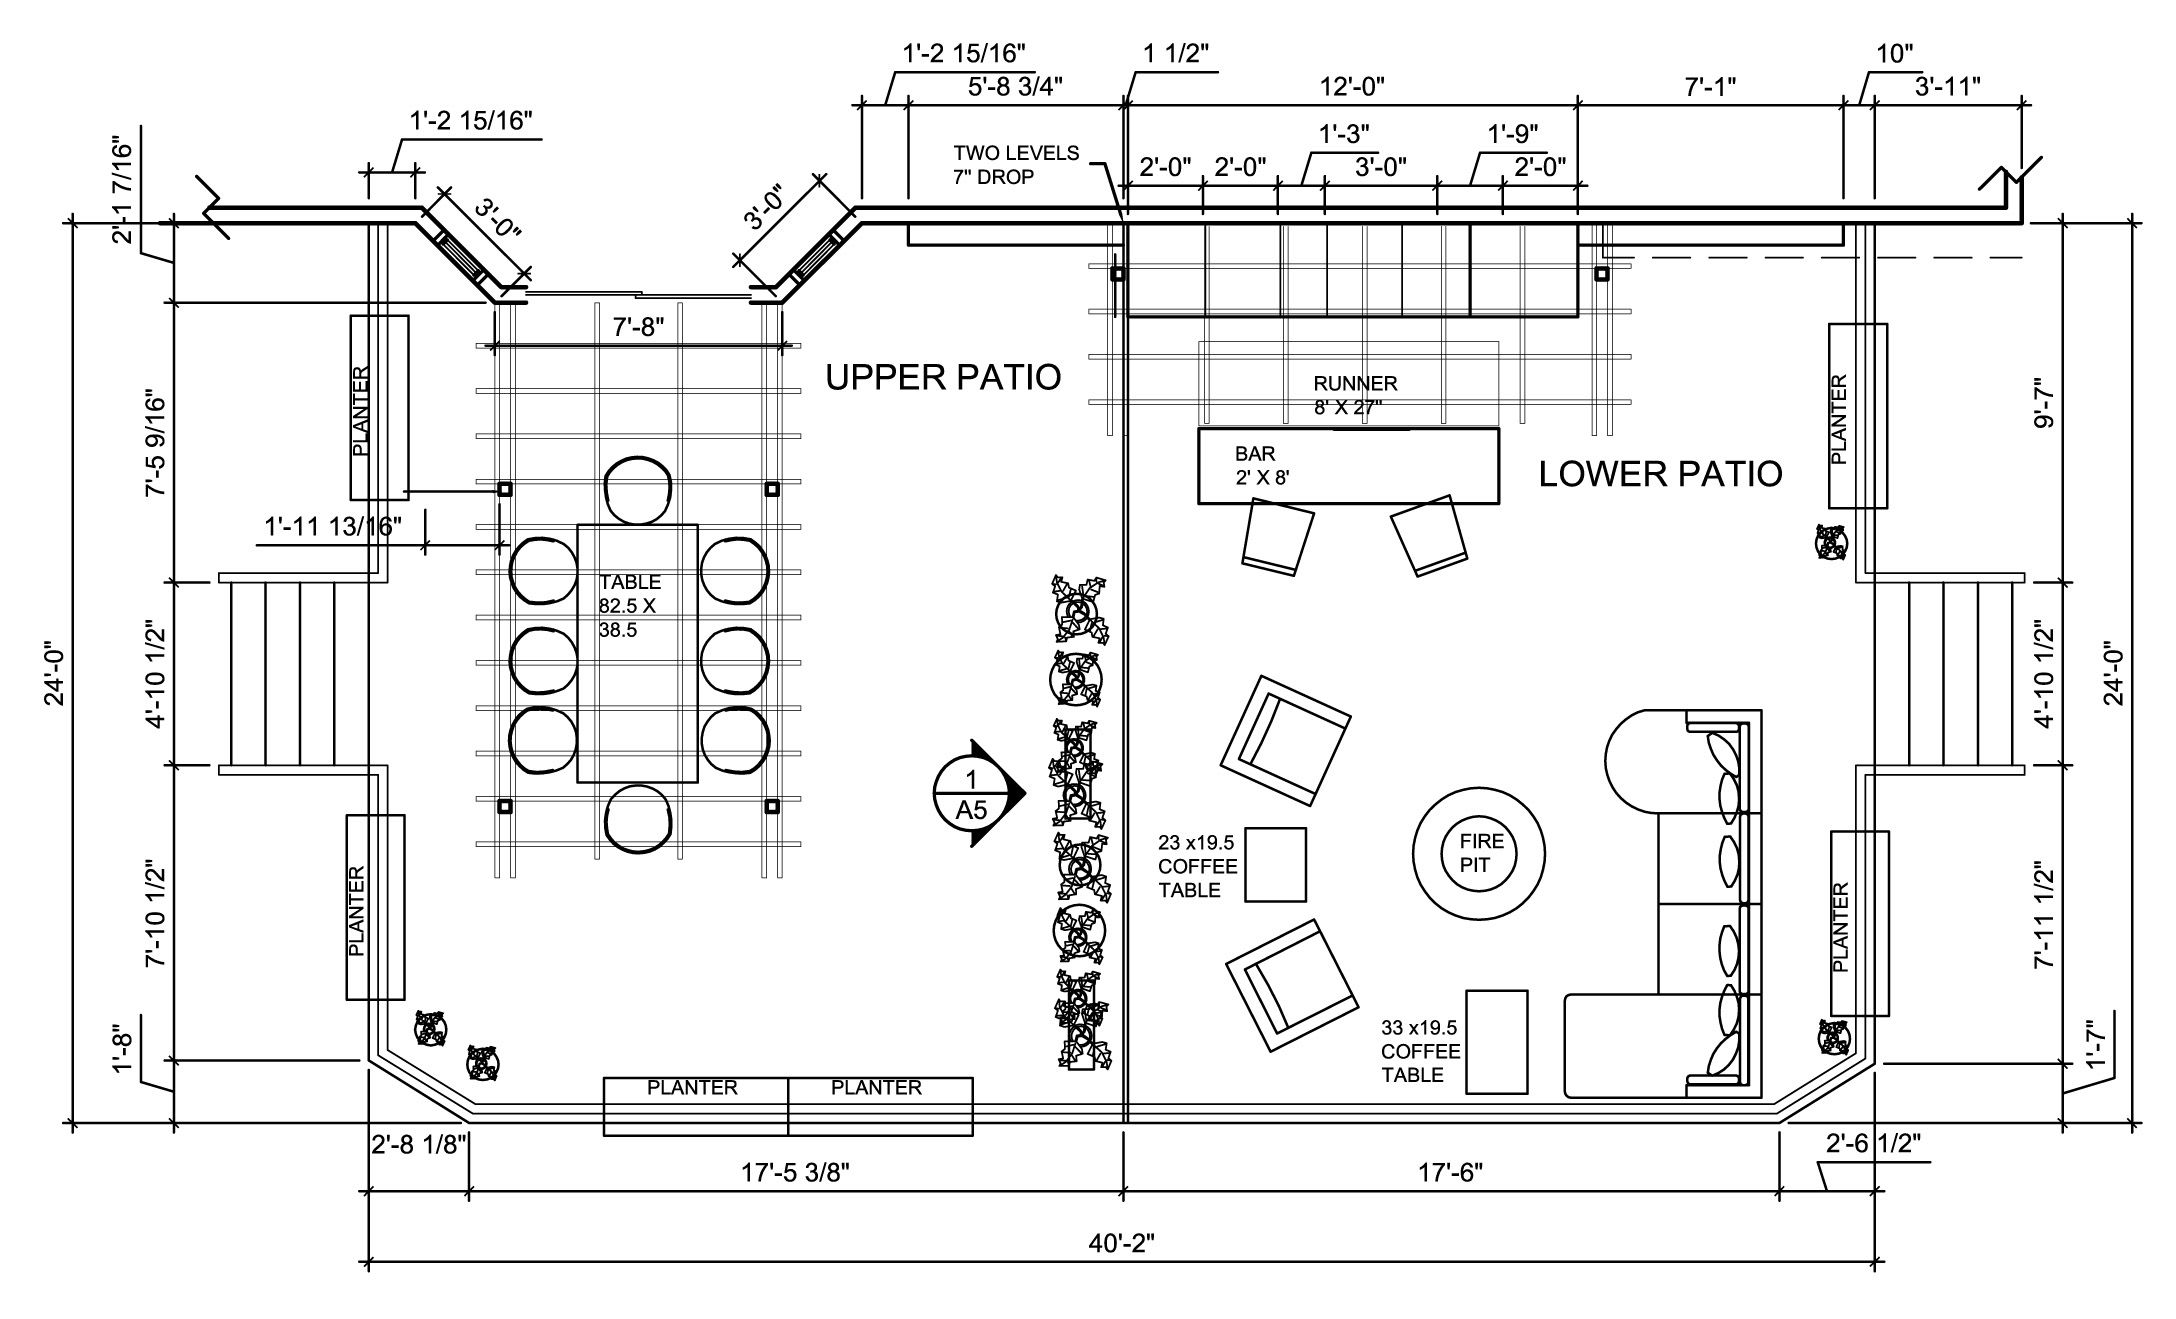 Patio Furniture Space Planning Patio Furnishings Furniture Layout Space Planning